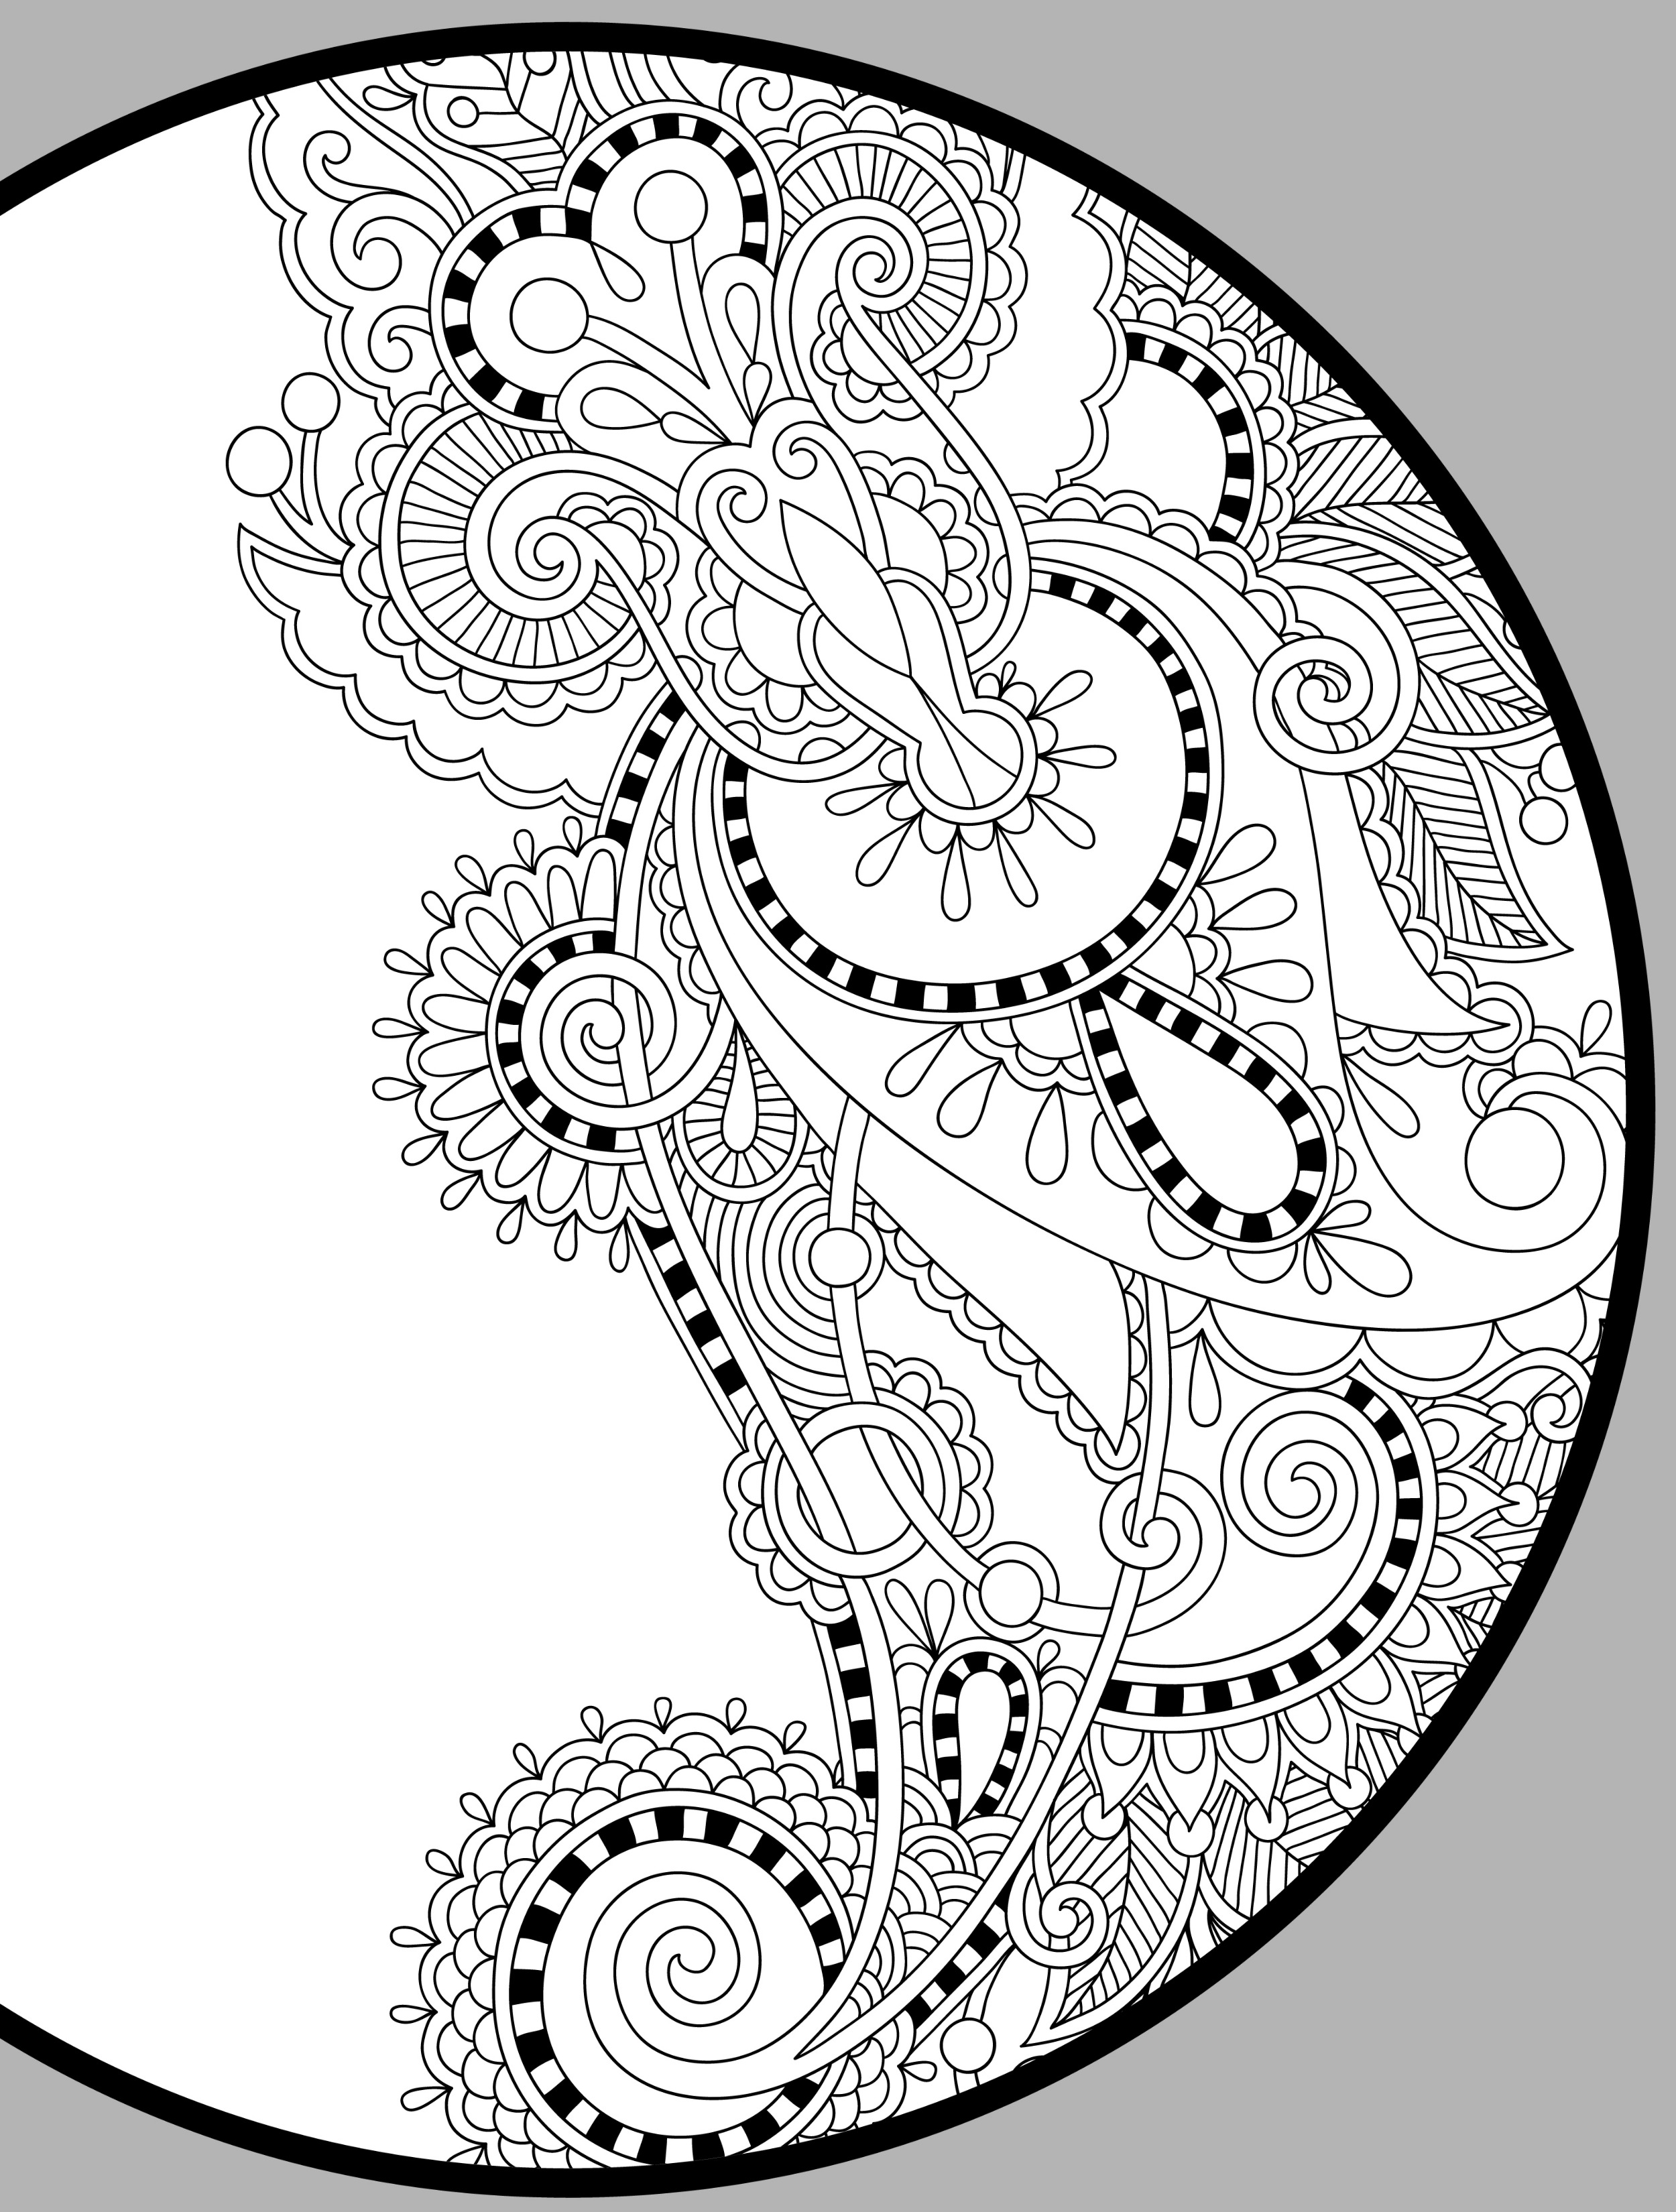 pretty pictures to color ryans free coloring pages to pictures color pretty